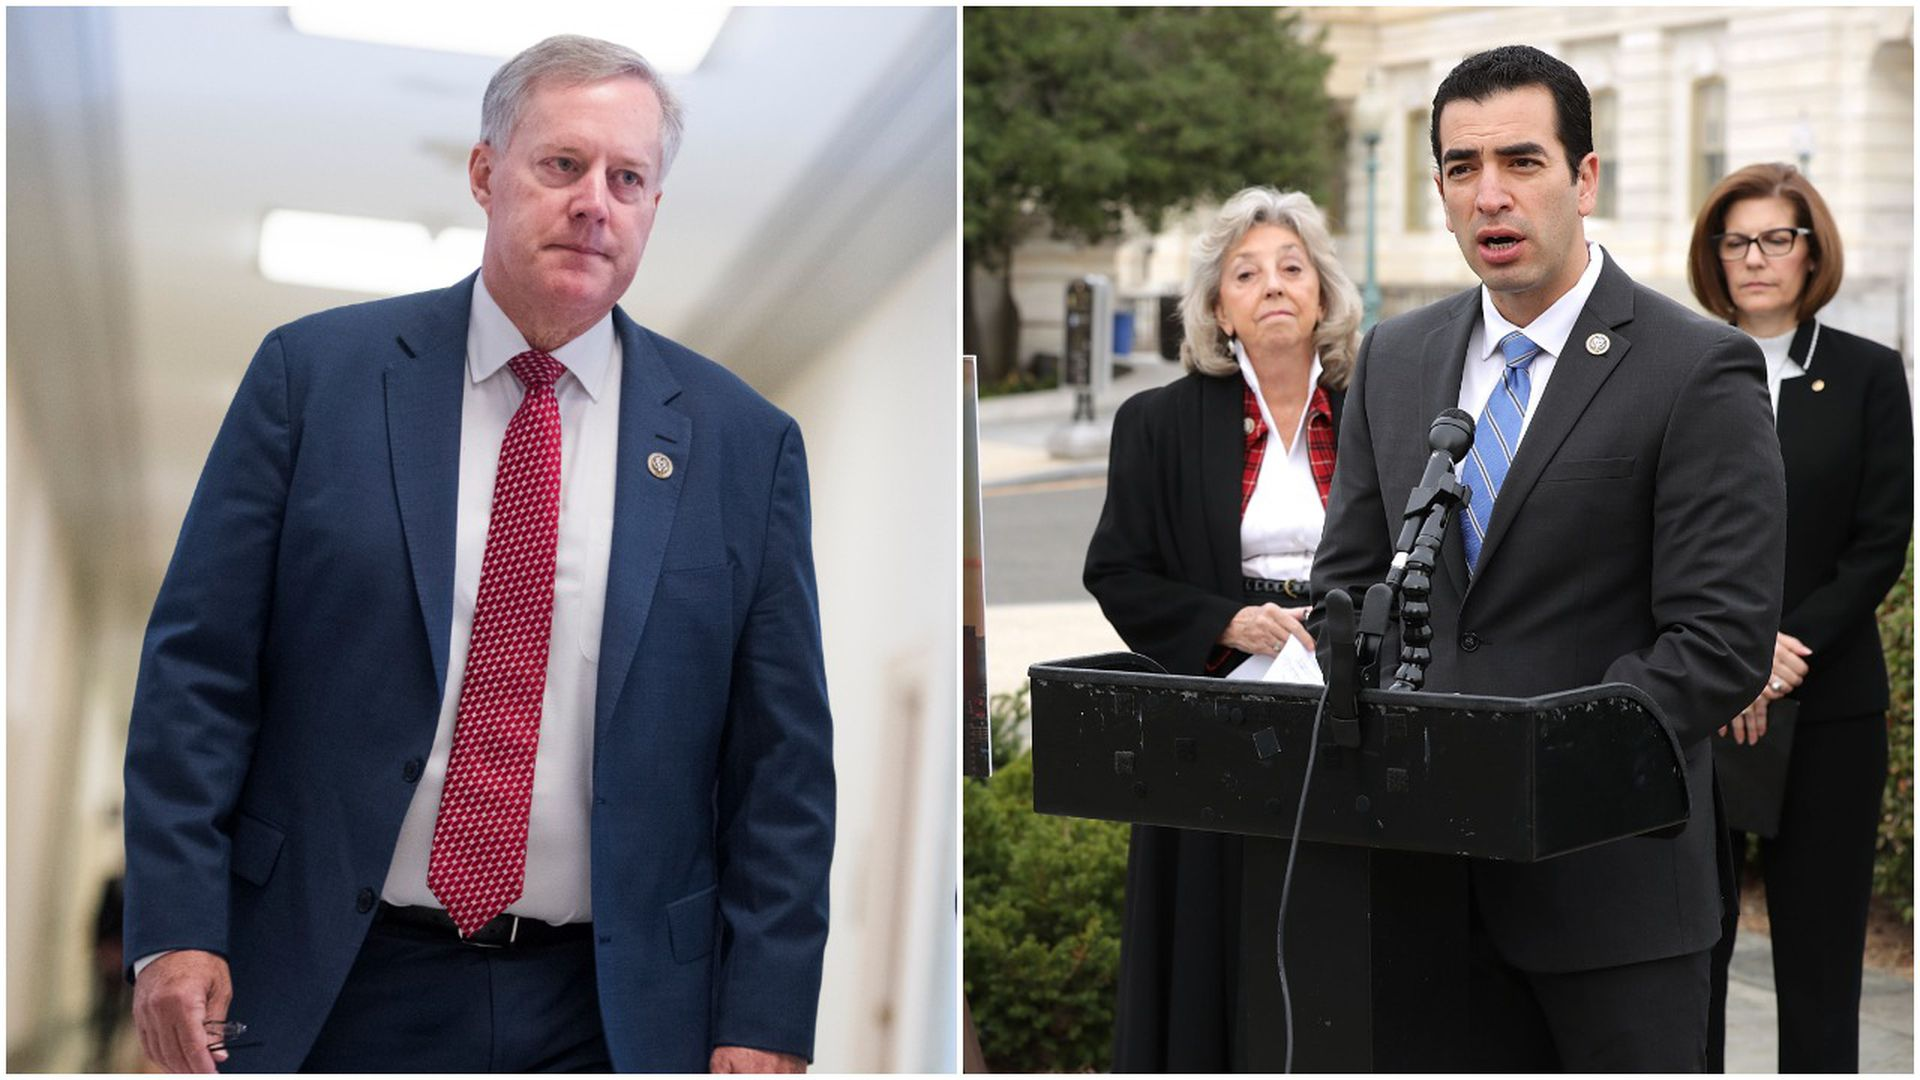 A collage of Rep. Mark Meadows and Rep. Ruben Kihuen